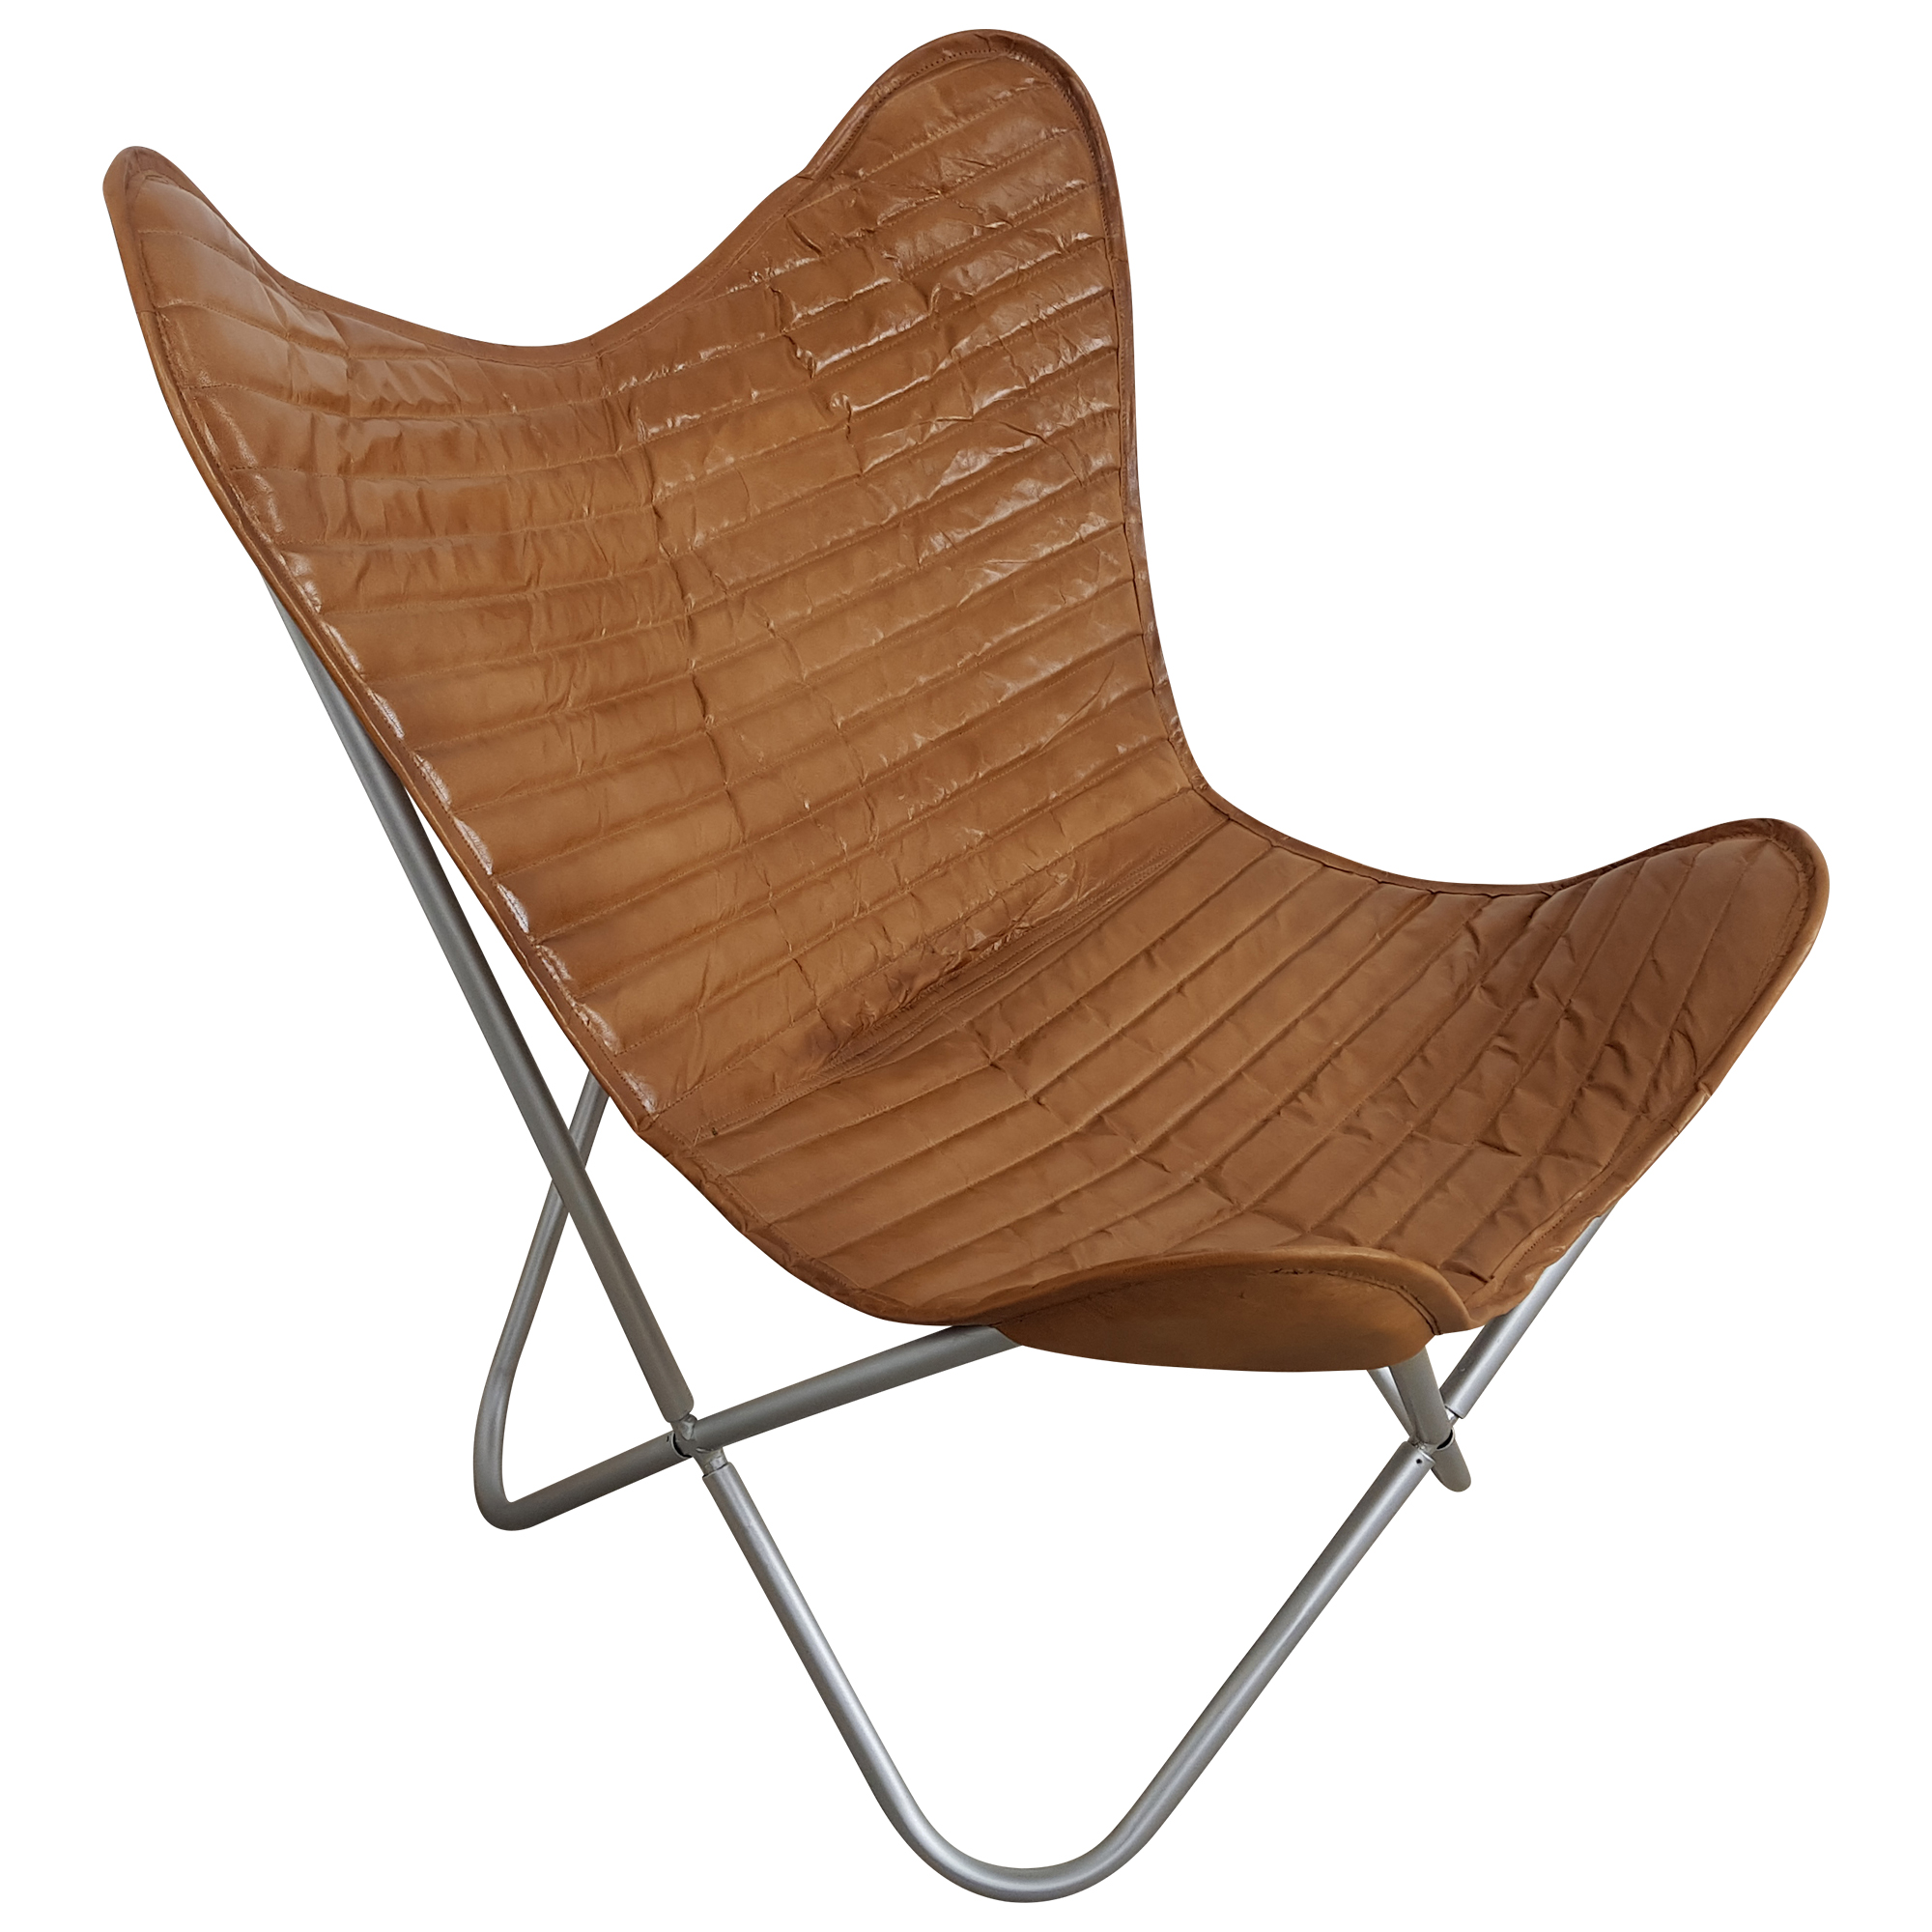 Sessel Butterfly Leder Butterfly Chair Sessel Design Lounge Stuhl Echt Leder